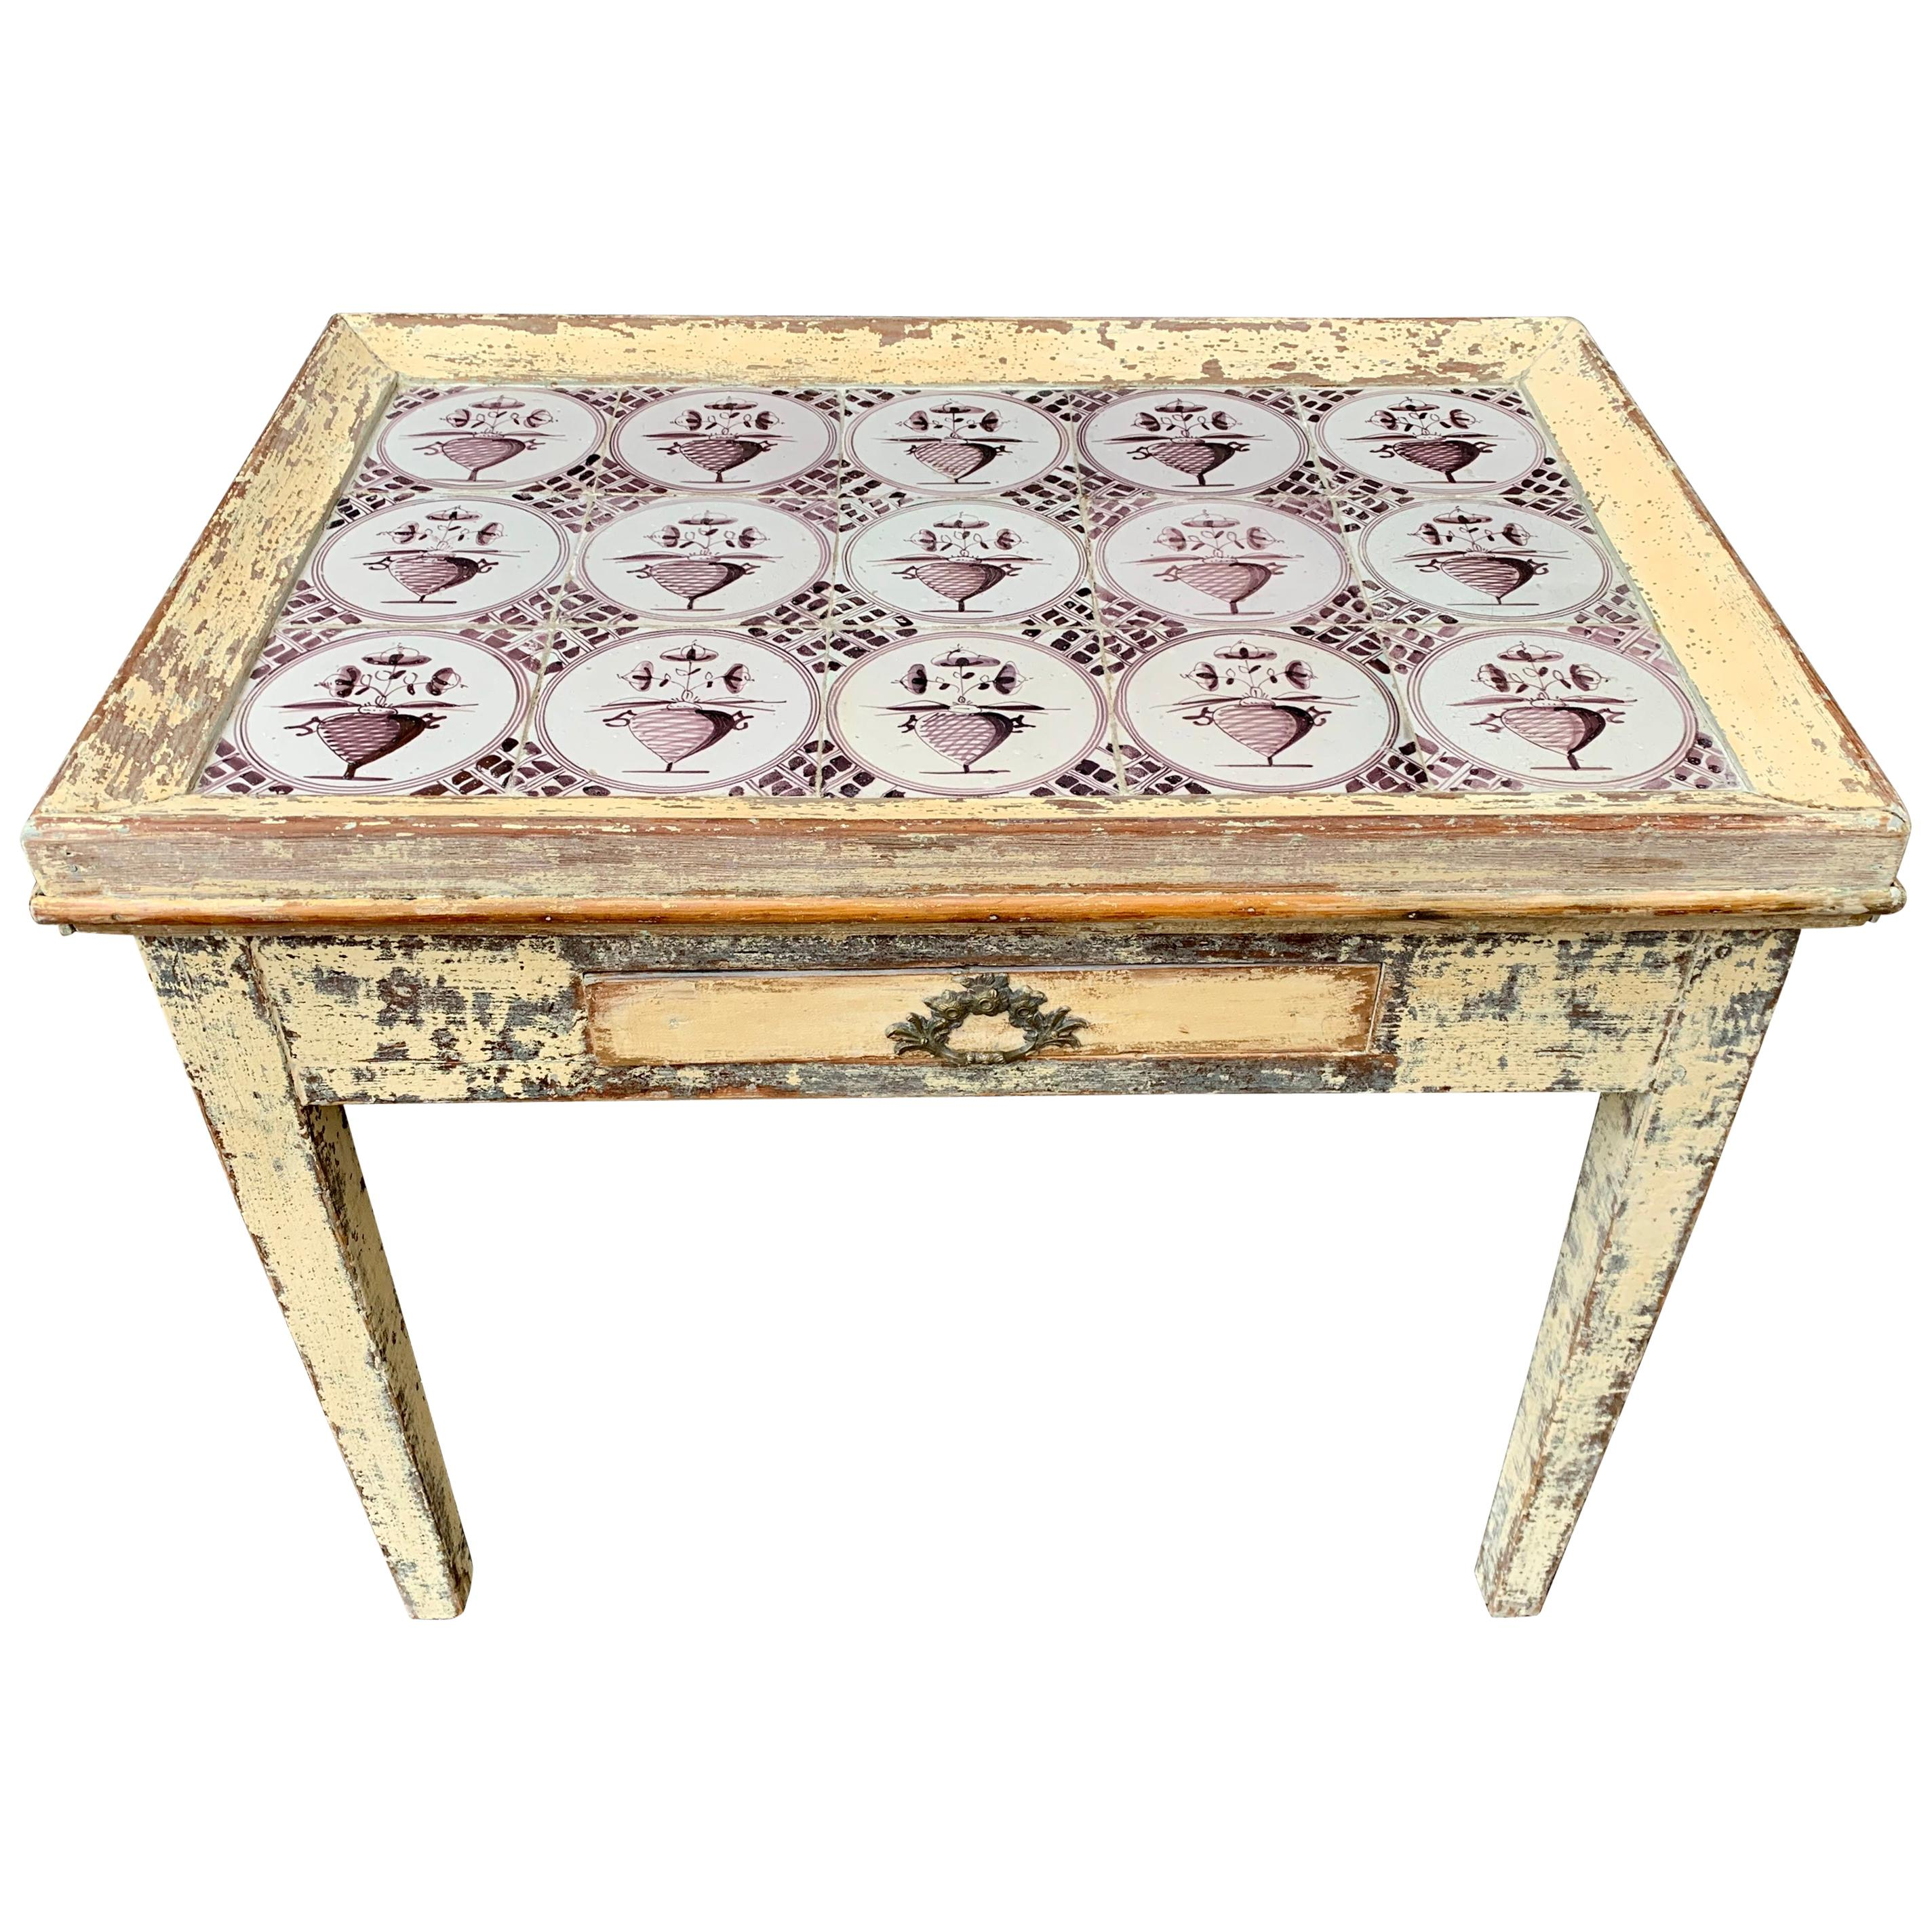 19th Century Swedish Gustavian Painted Delft Tile Table